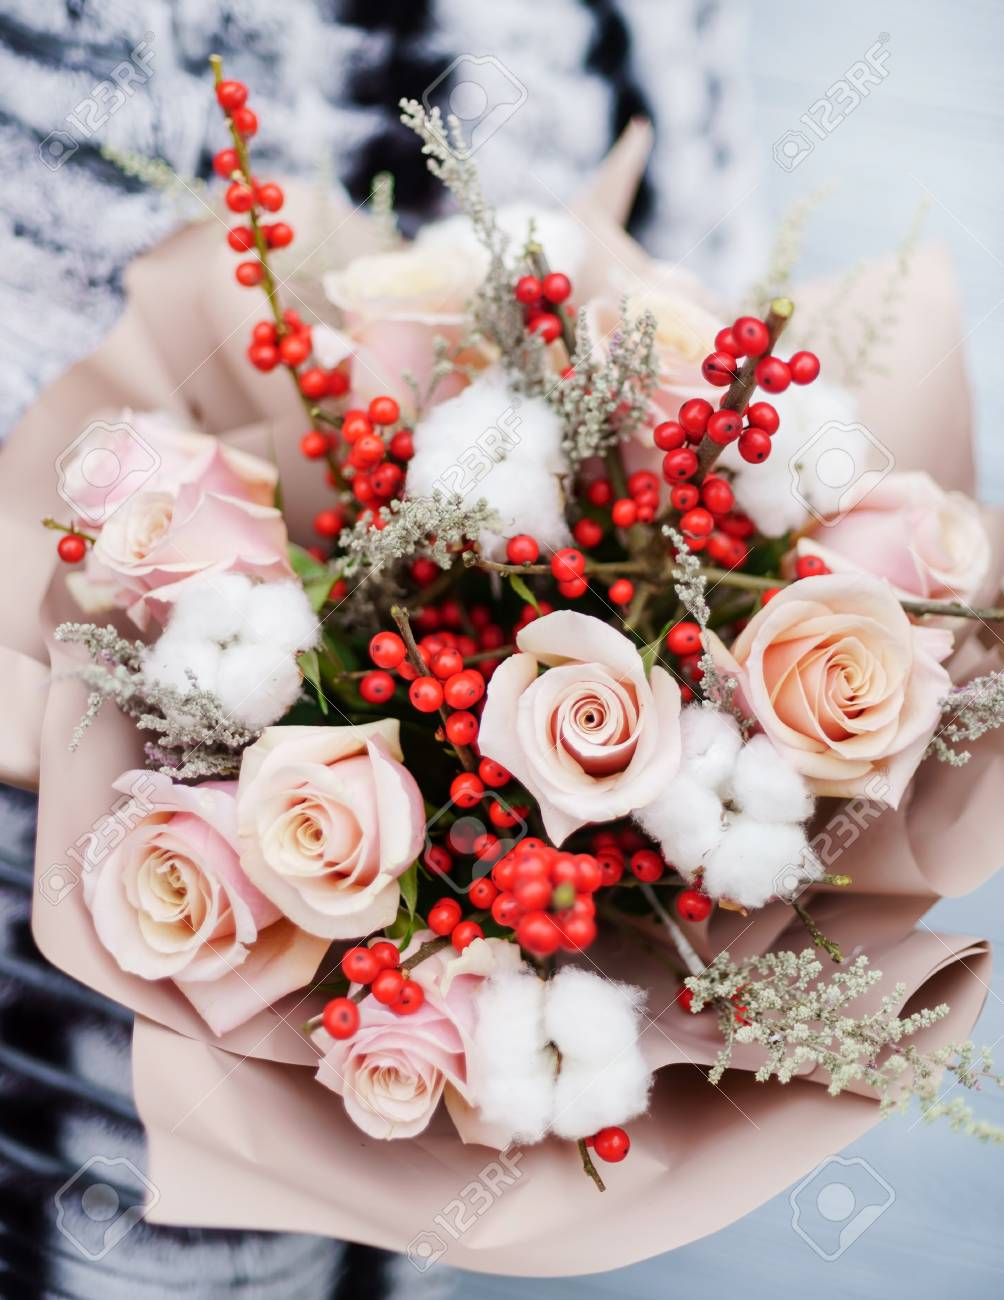 nice bouquet in the hands - 100205654